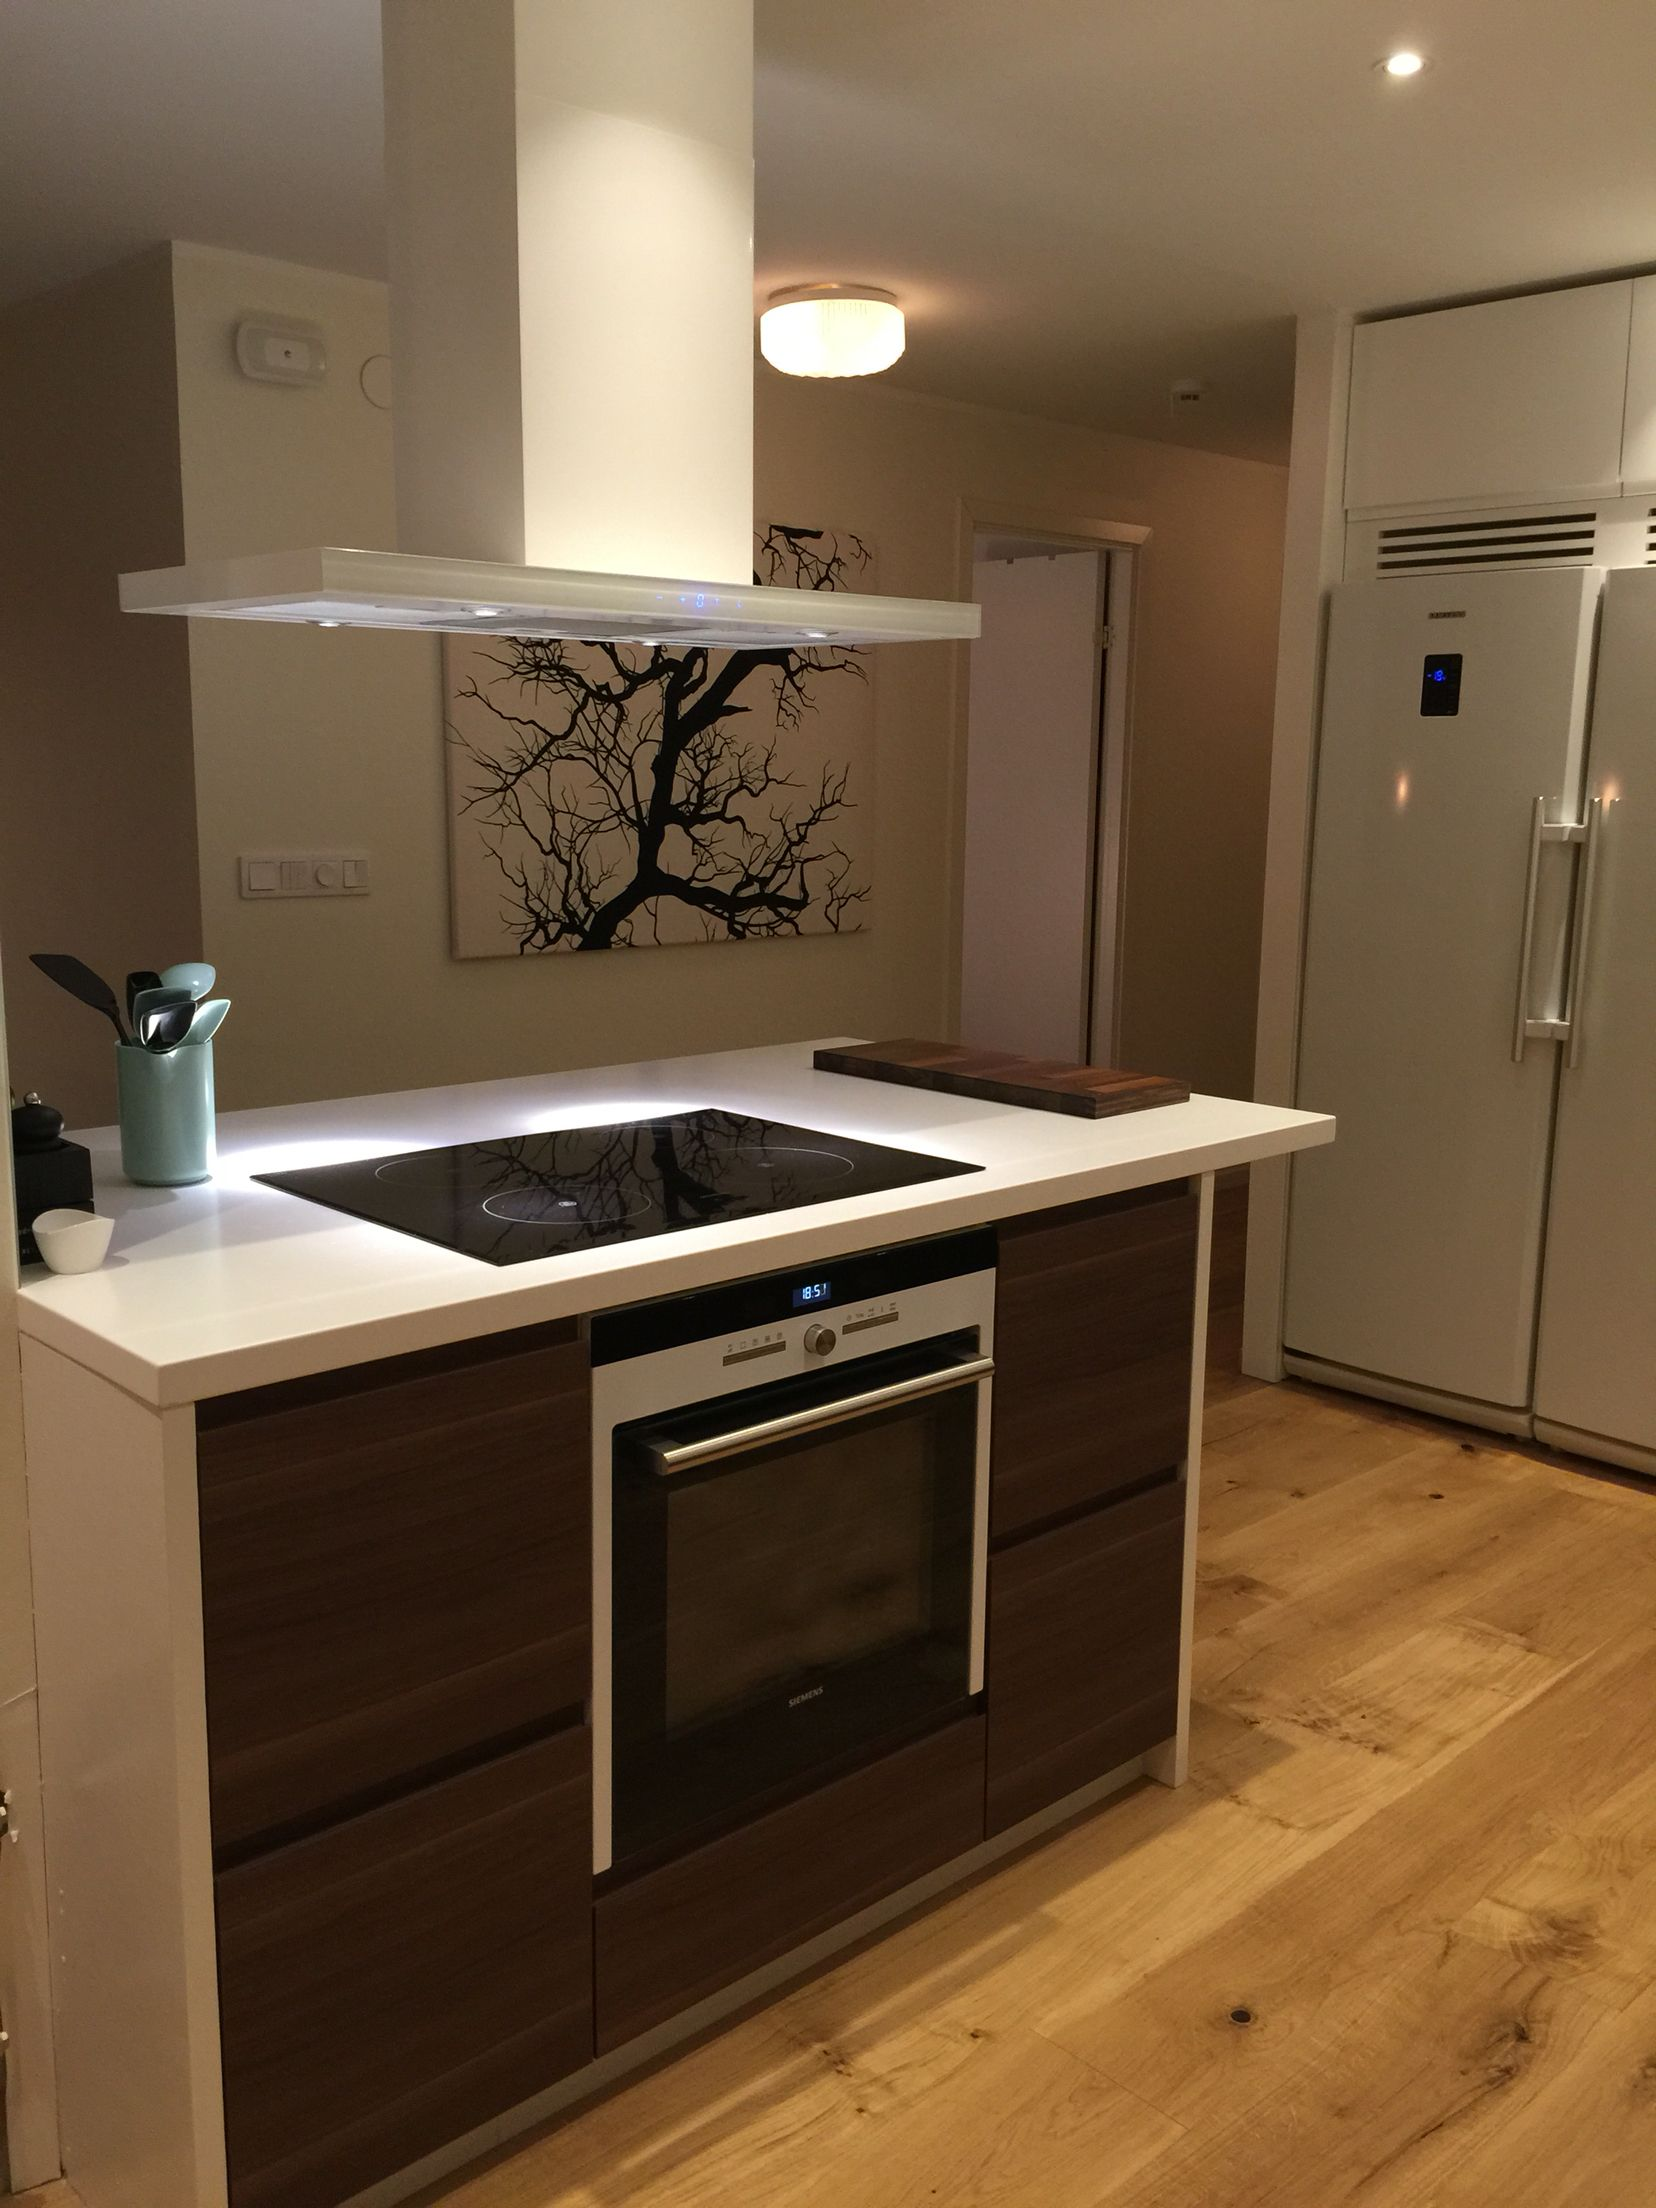 Ikea voxtorp chestnut kitchen   From 70-ties to contemporary   Pinterest